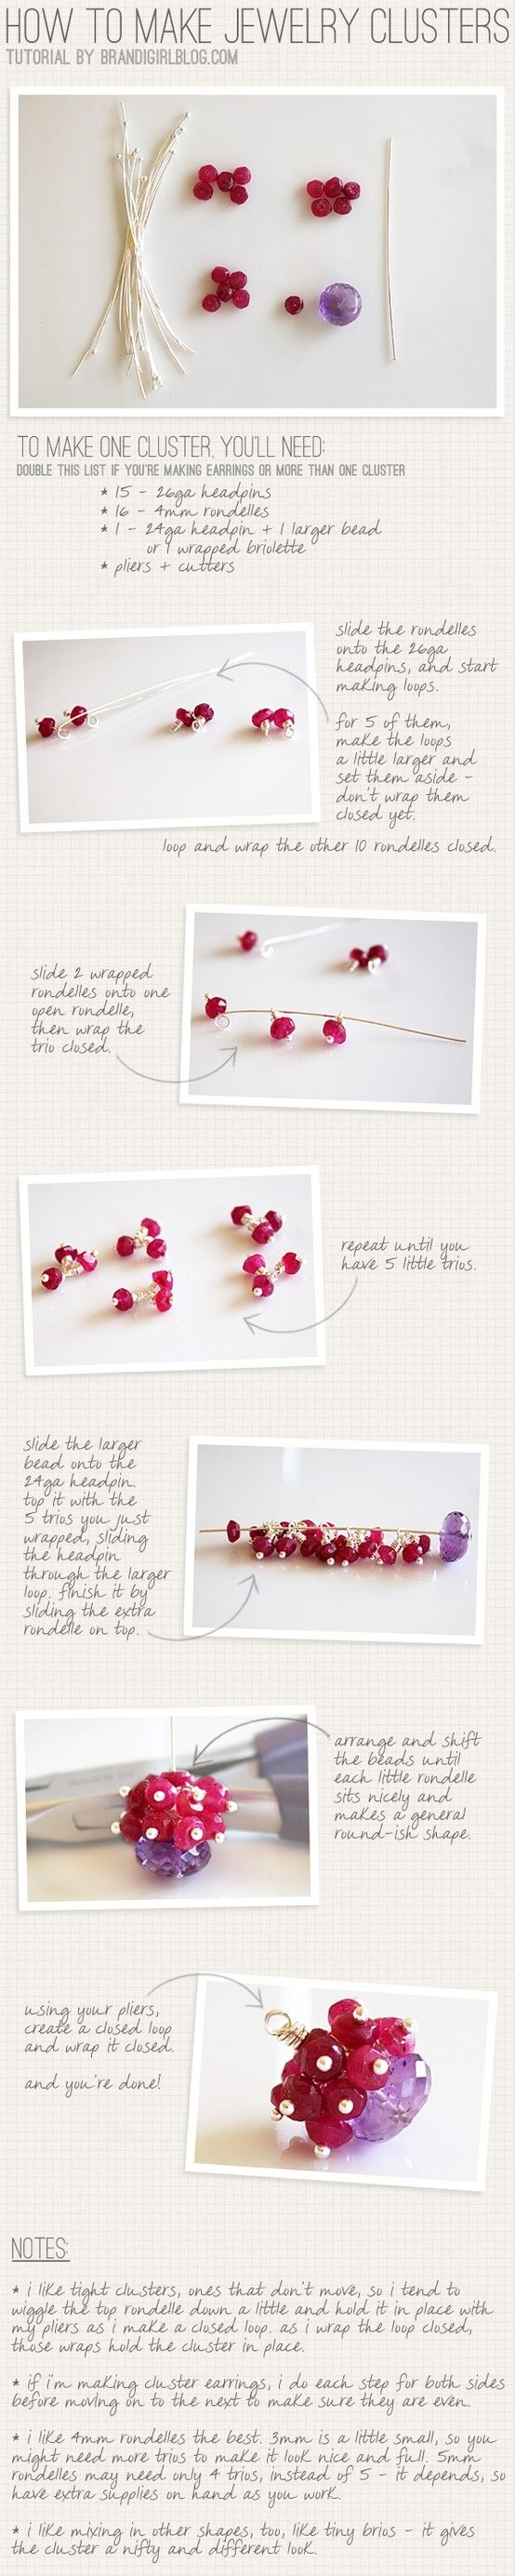 Making Jewellery Clusters